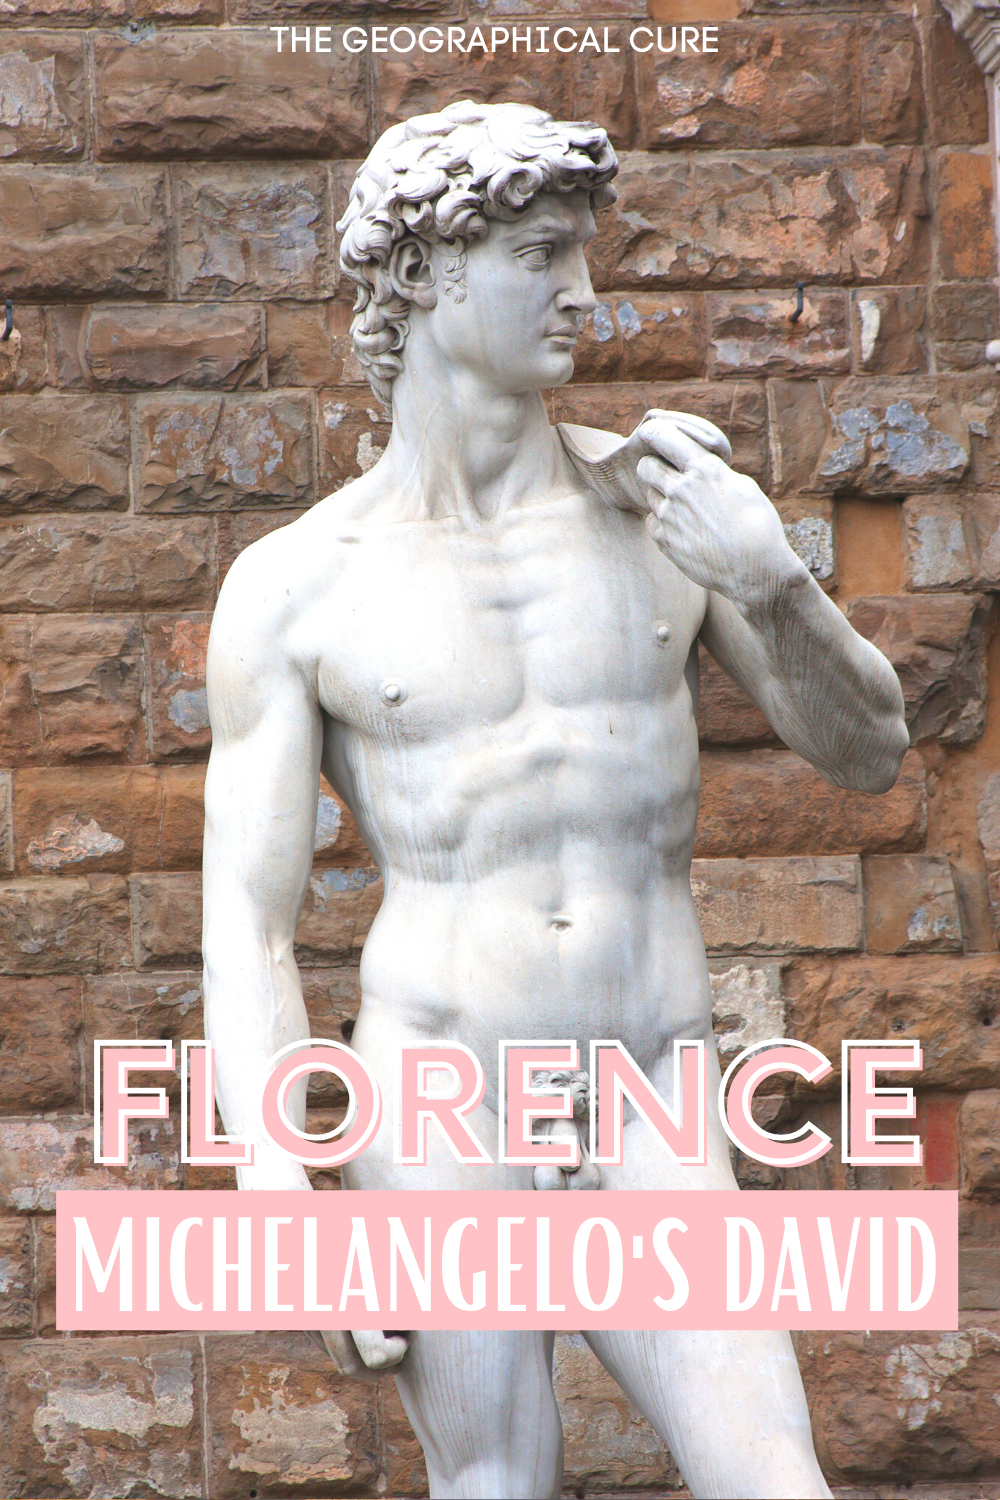 guide to seeing Michelangelo's David sculpture, a must see site in Florence